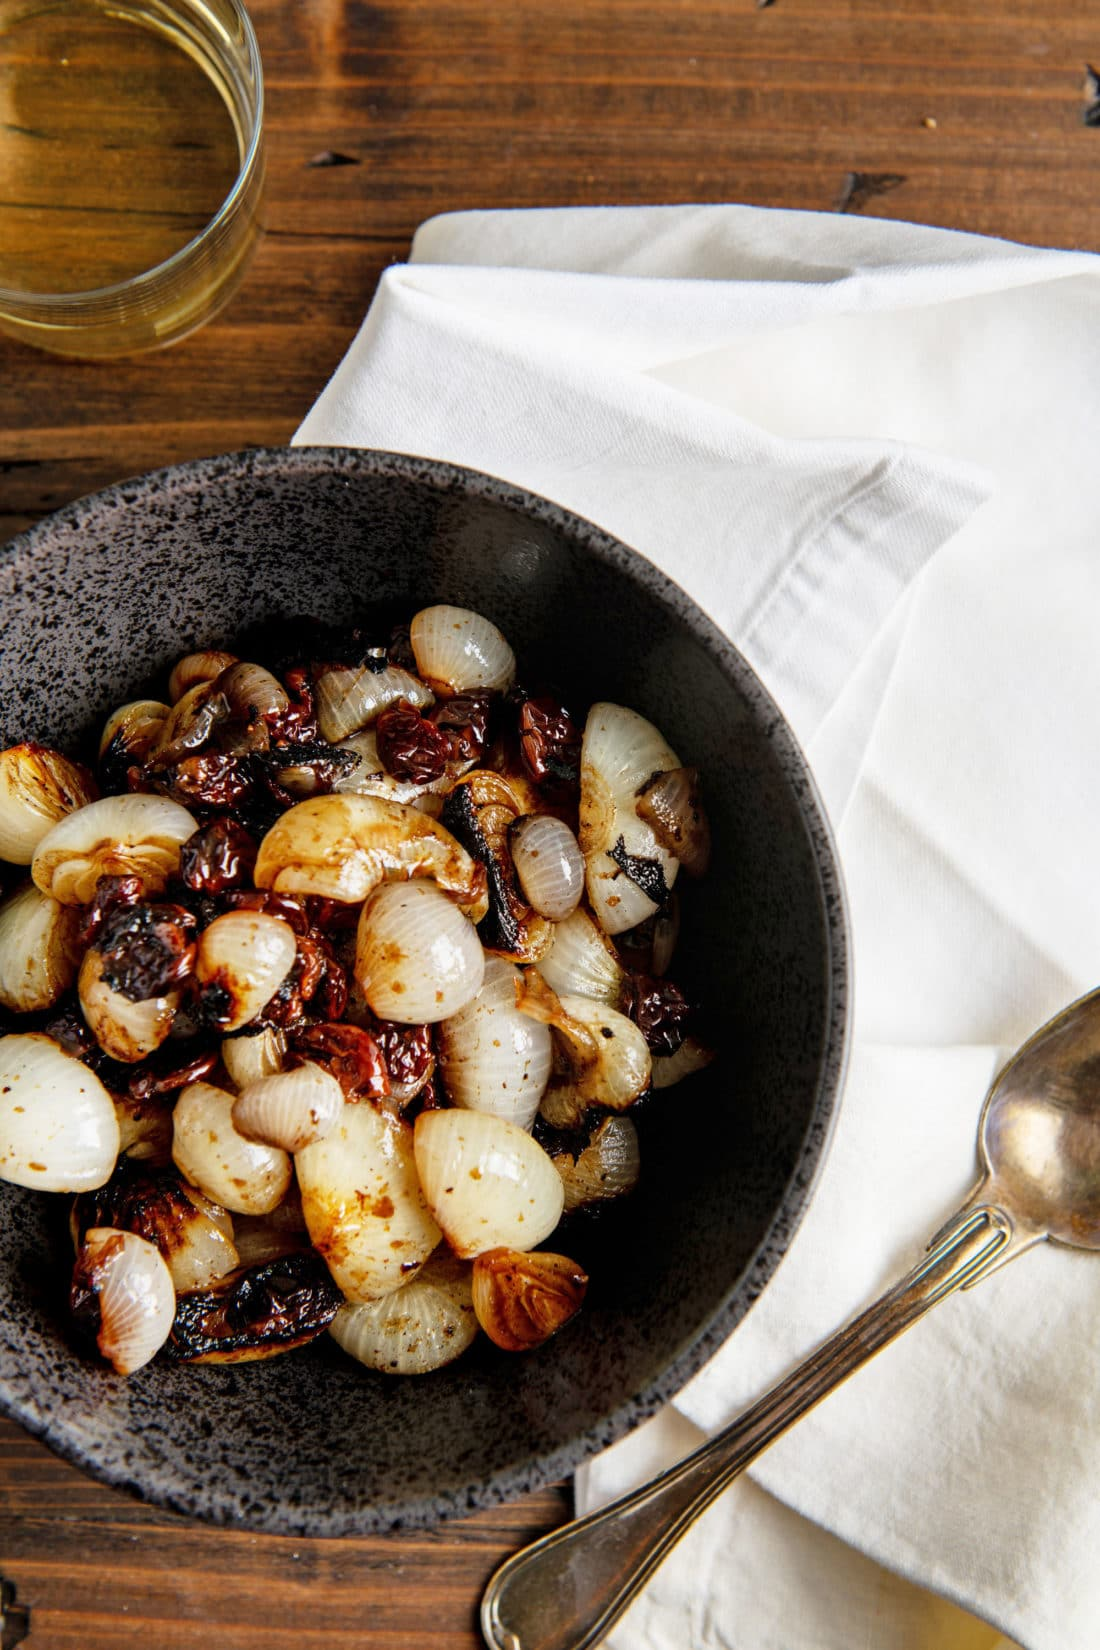 Braised Cipollini Onions with Dried Cherries